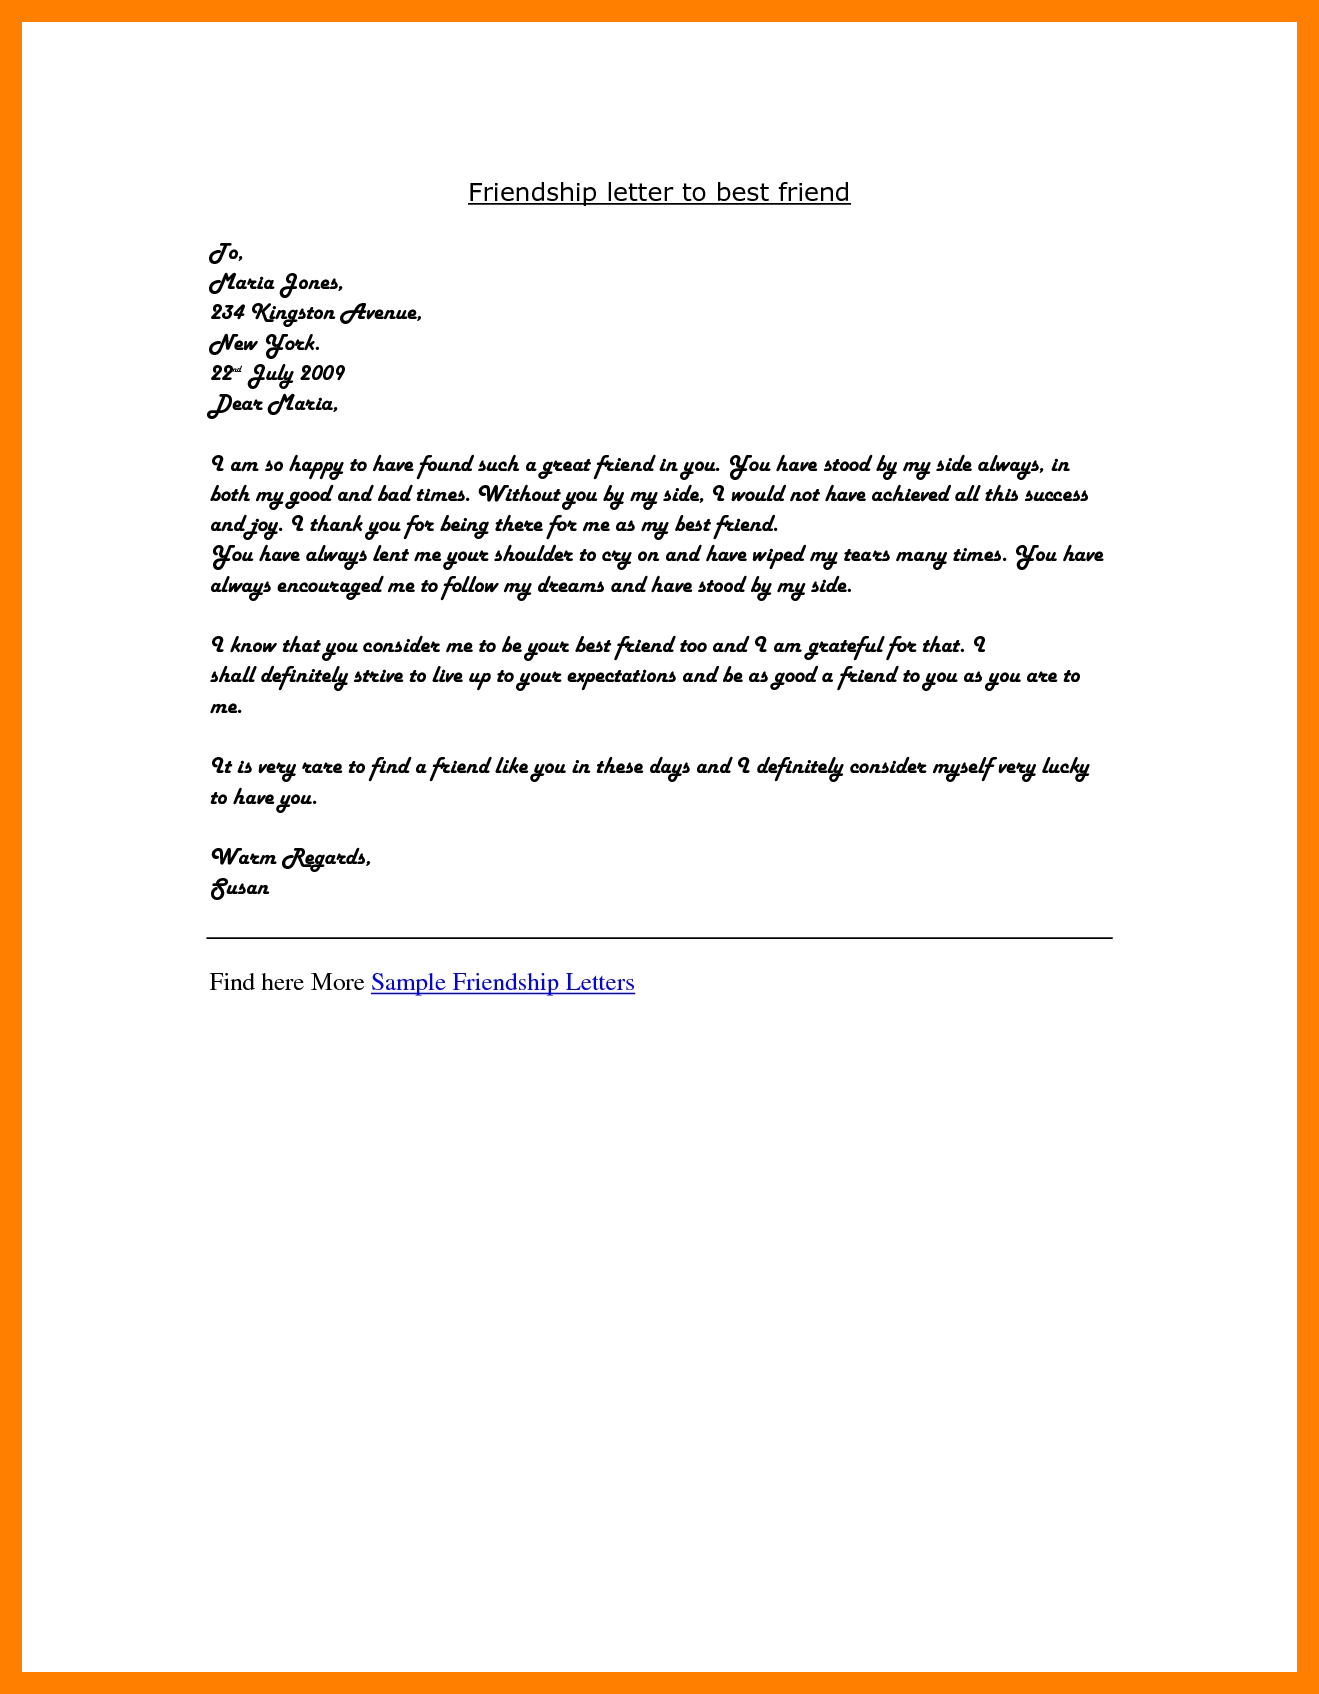 Performance Improvement Plan Letter Template Examples  Letter Cover Templates